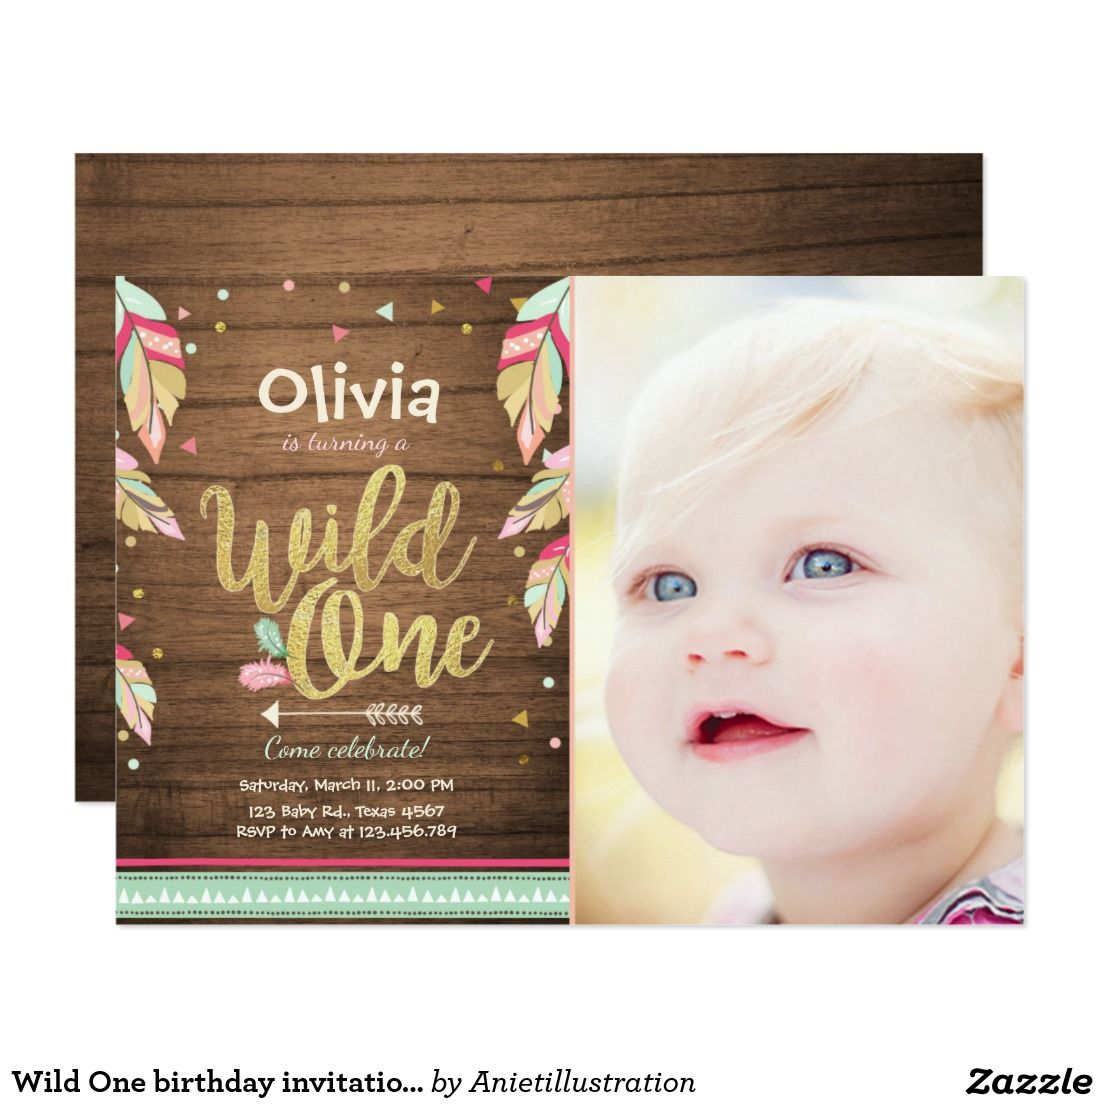 Wild One birthday invitation First birthday Girl | Birthday - Aniet ...